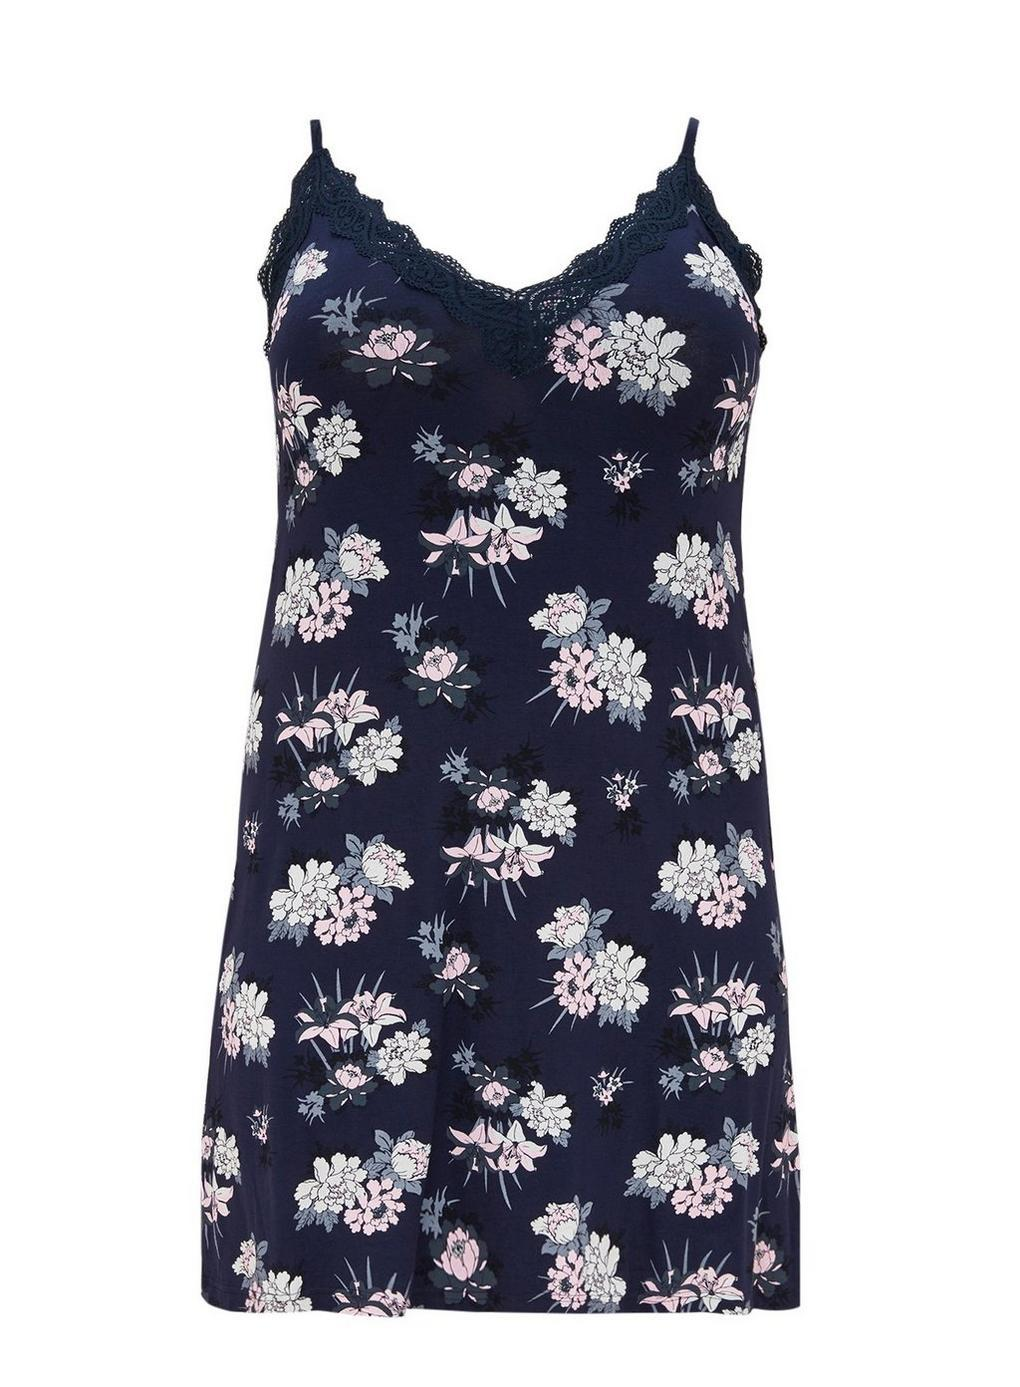 2ee765a88a Evans Navy Blue Floral Print Nightdress in Blue - Lyst